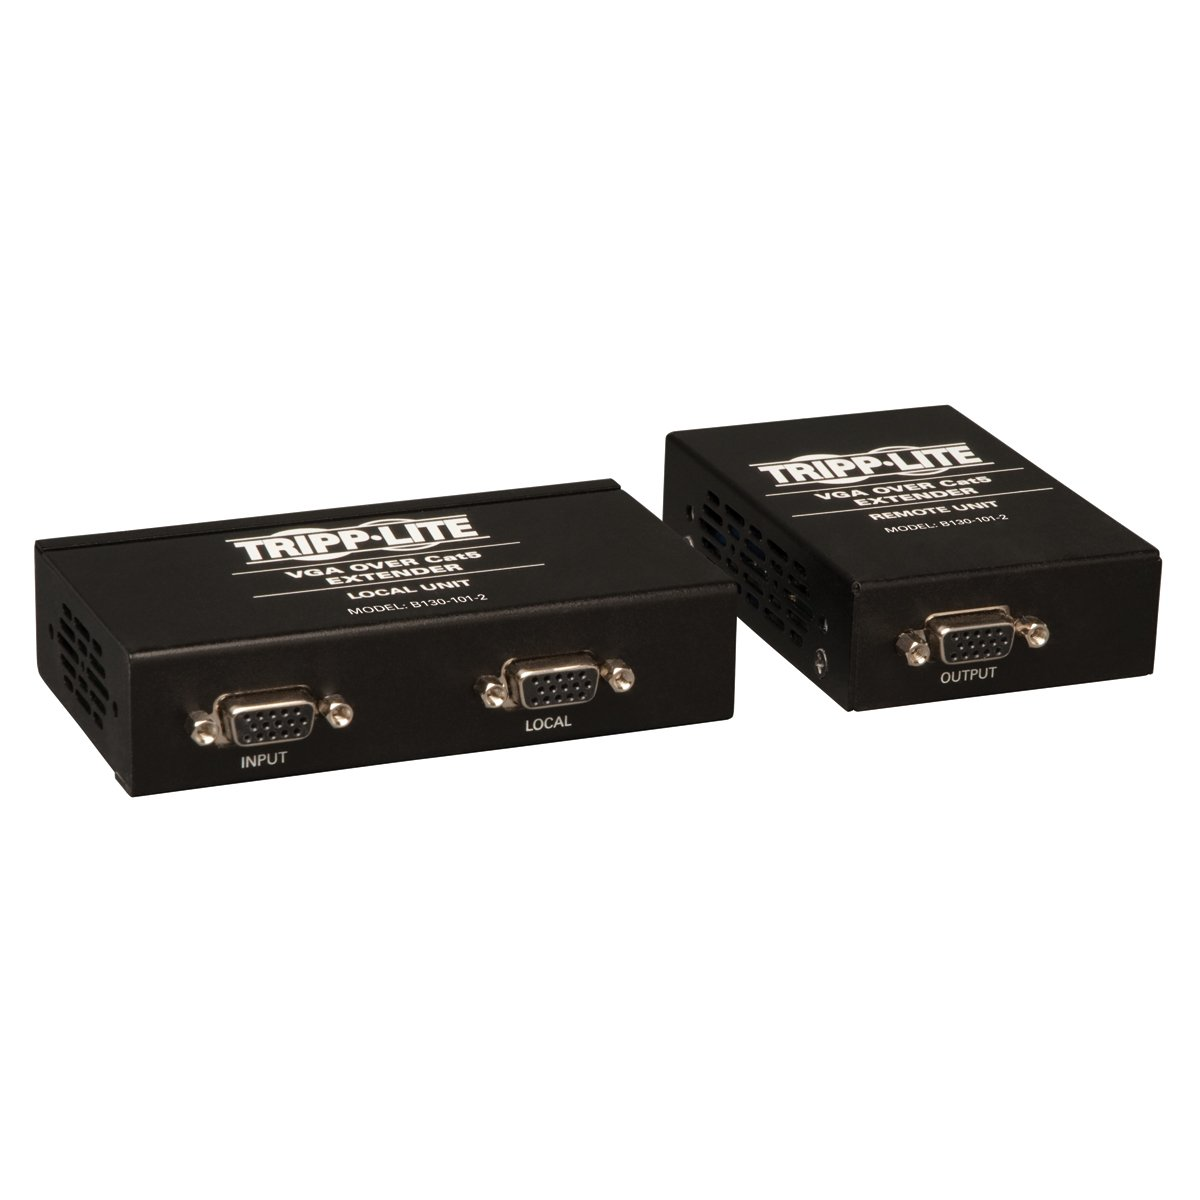 Tripp Lite VGA over Cat5 / Cat6 Extender, Transmitter and Receiver with EDID Copy, 1920x1440 at 60Hz(B130-101-2) by Tripp Lite